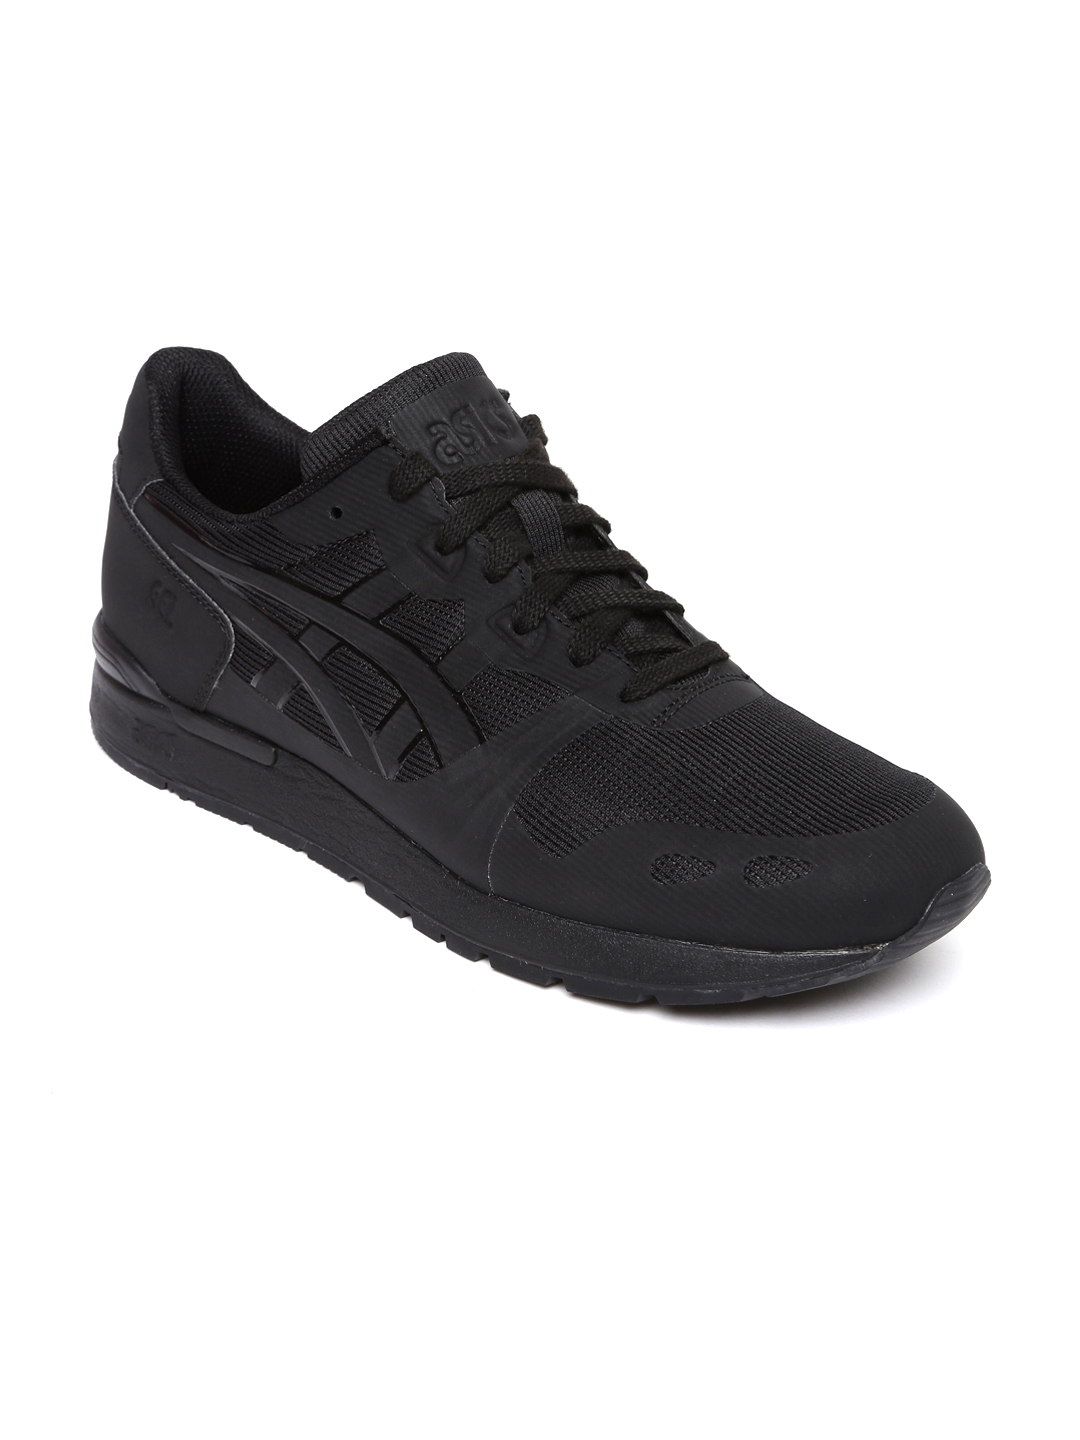 Buy ASICS Tiger Unisex Black GEL LYTE NS Sneakers - Casual Shoes for ... 03621b5da4